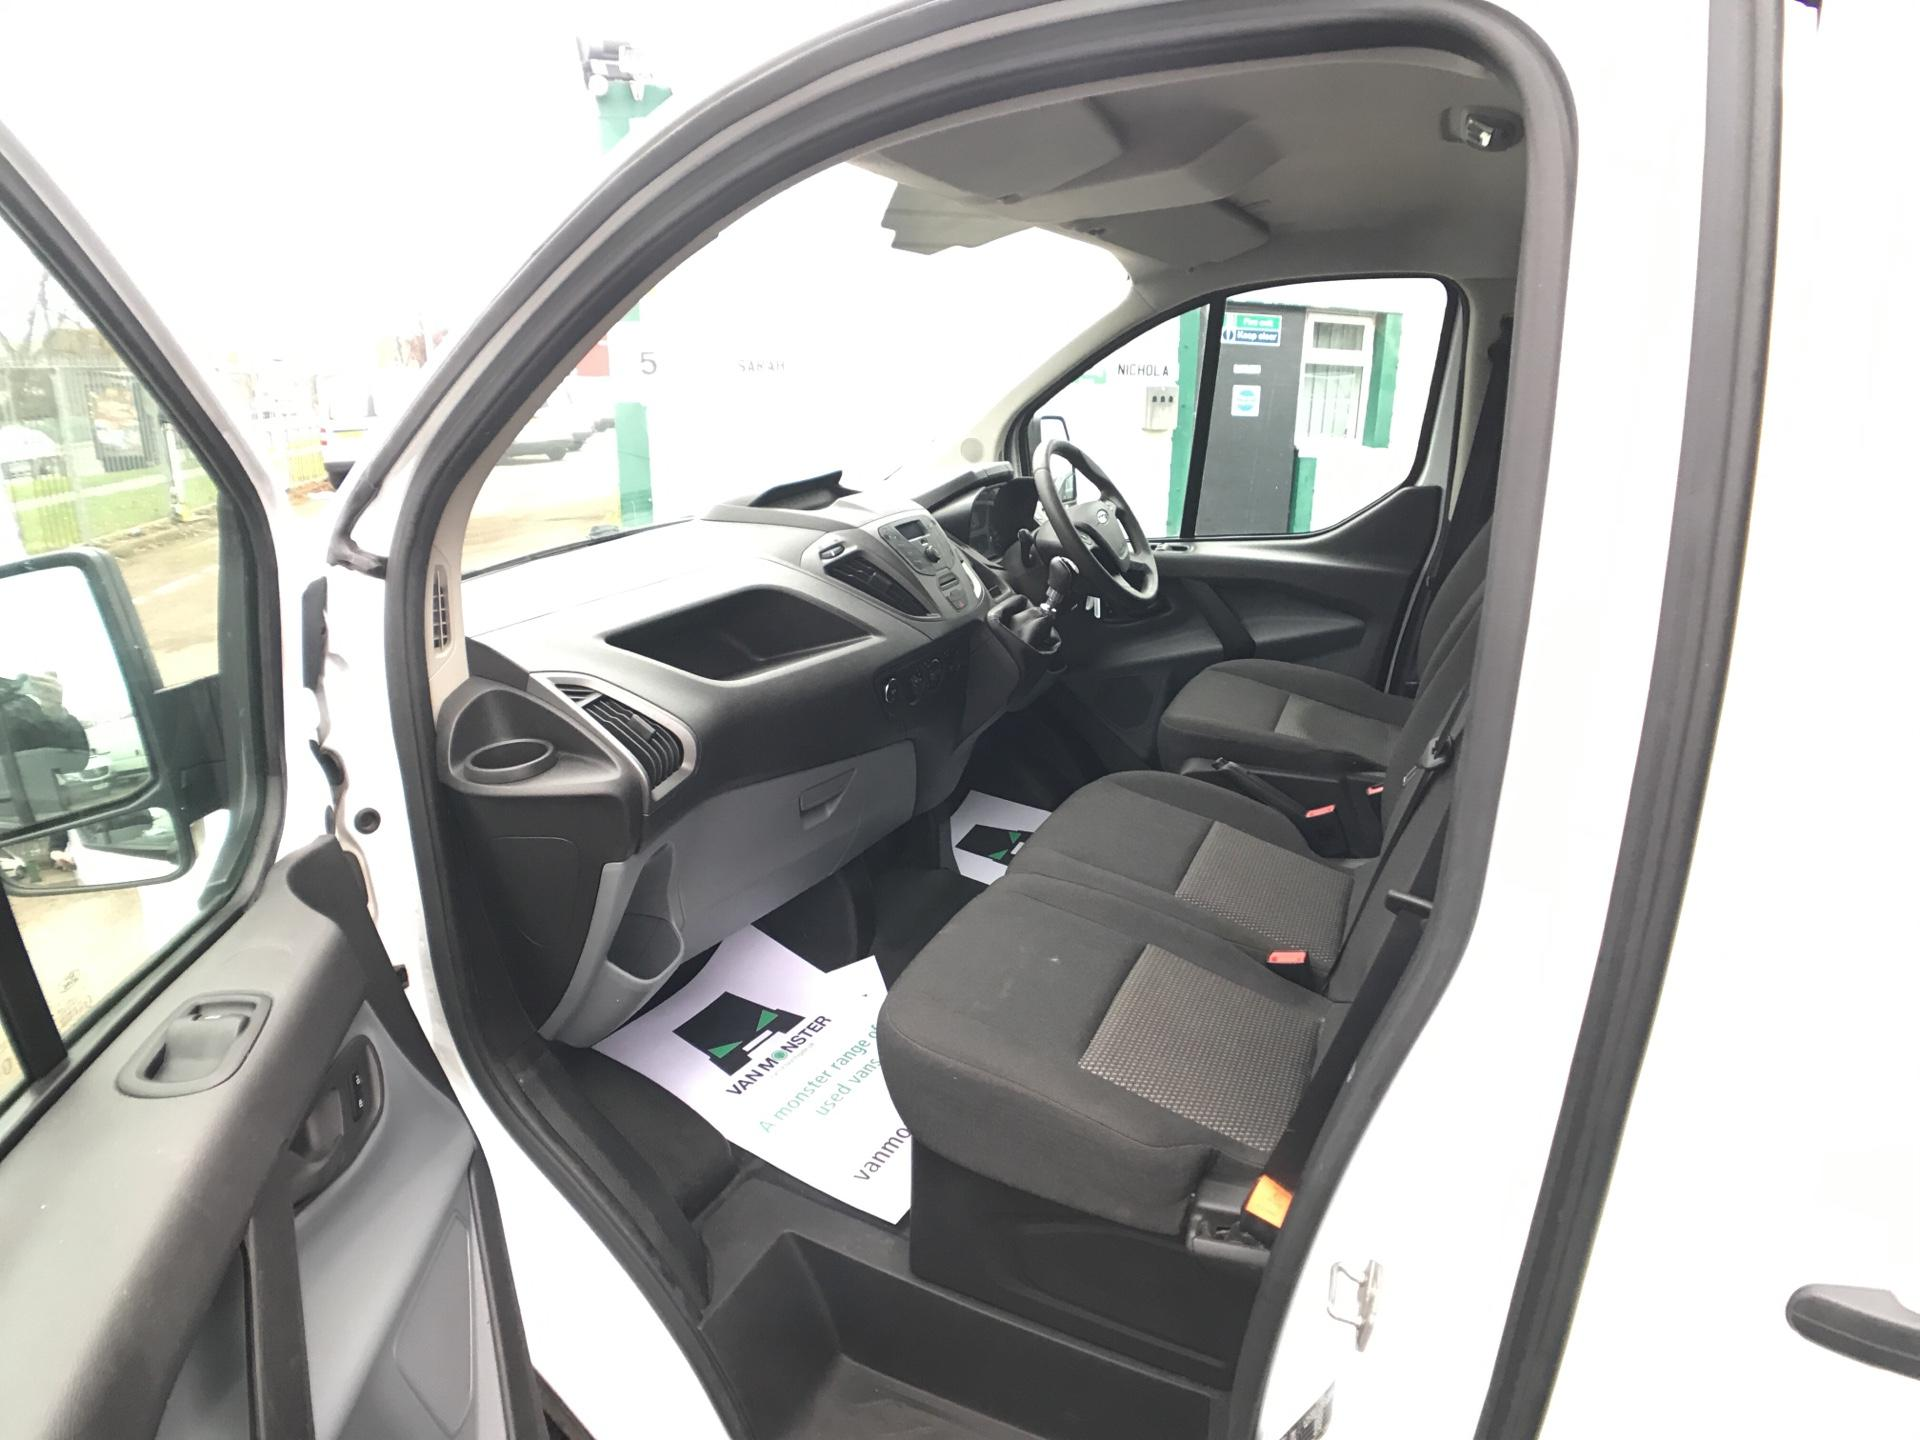 2015 Ford Transit Custom 290 L1 DIESEL FWD 2.2  TDCI 100PS LOW ROOF VAN EURO 5  (NK15XPX) Image 14